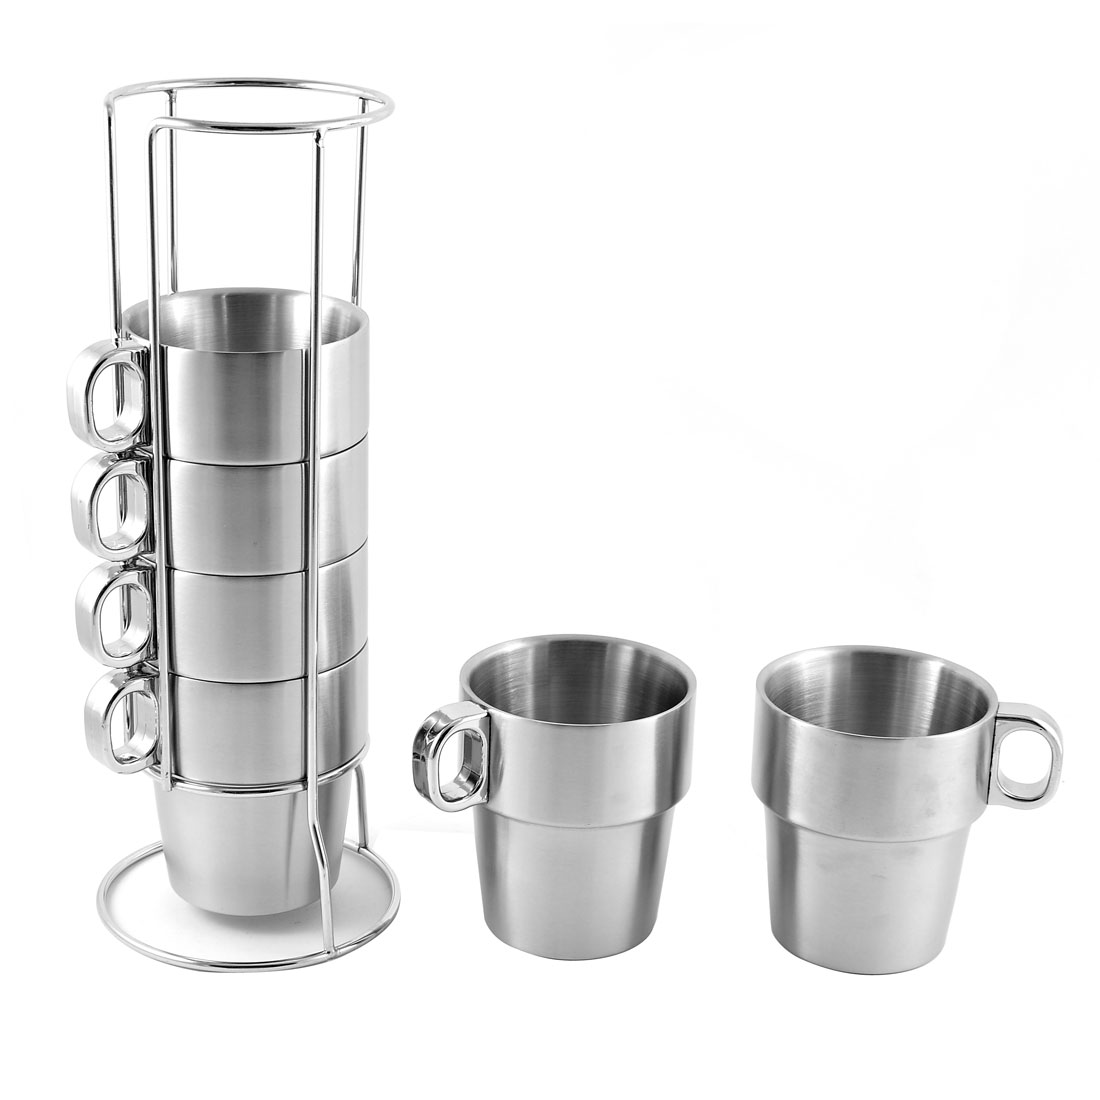 Living Room Stainless Steel 6 Cups w Stable Coffee Cup Pile Up Holder 7 in 1